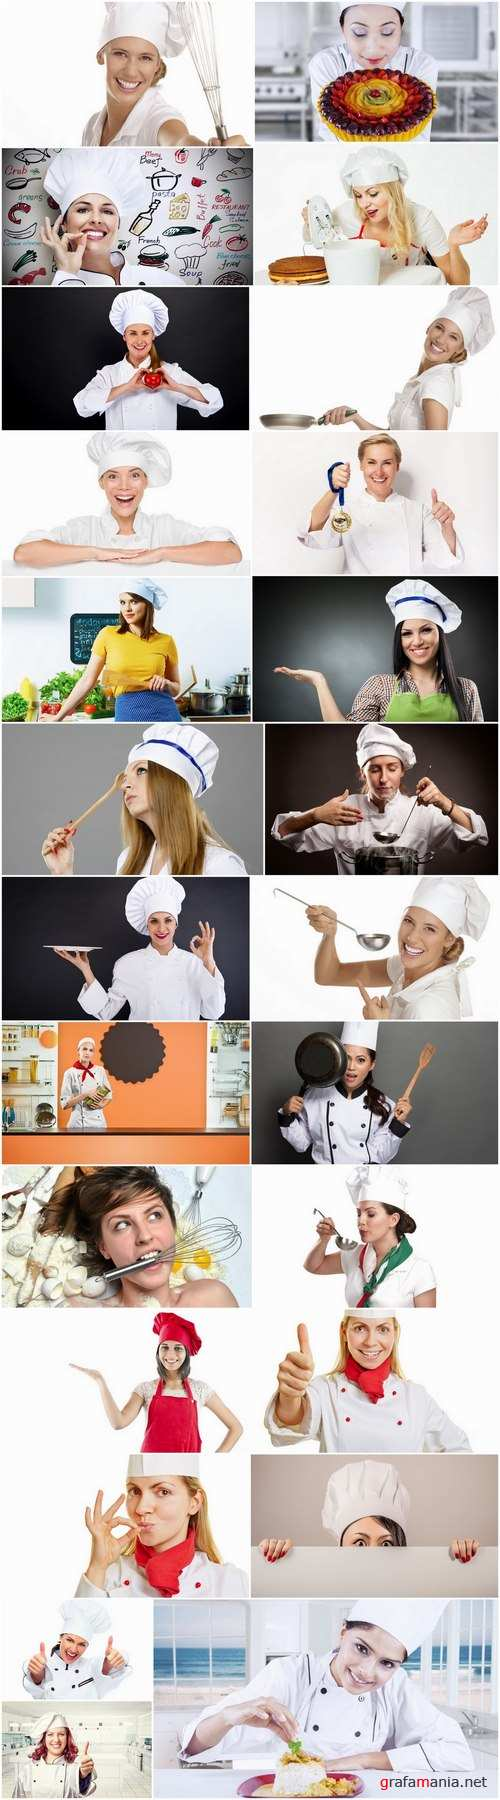 Girl woman chef cooking food in kitchen 25 HQ Jpeg